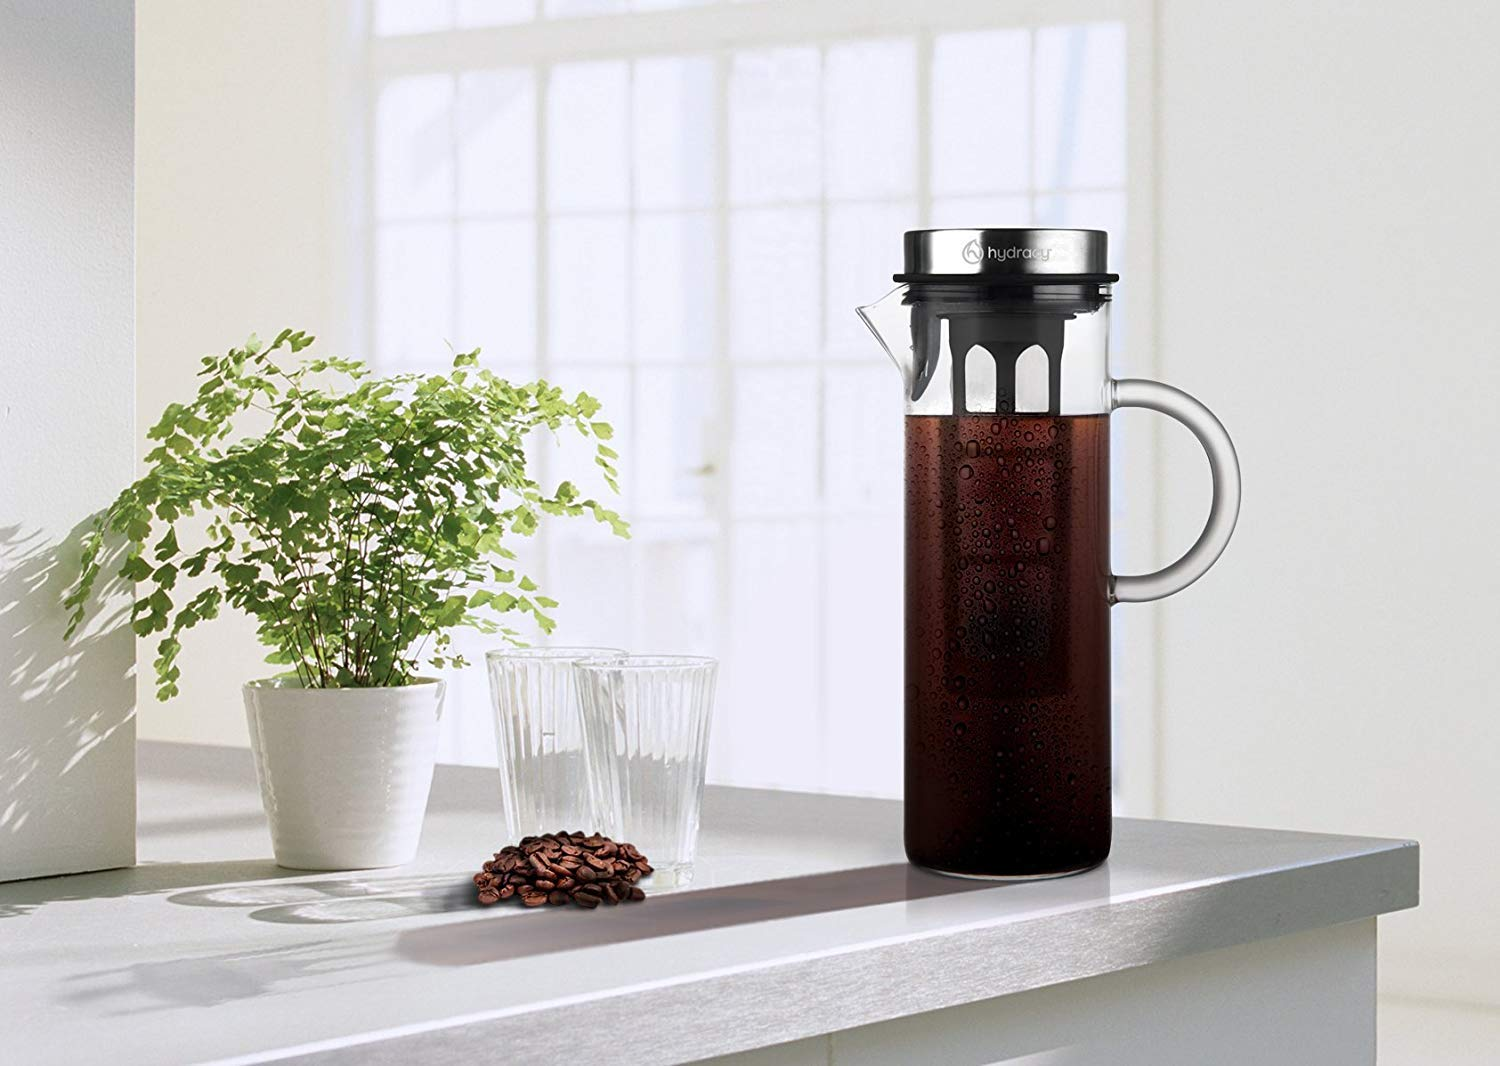 Cold-Brew-Coffee-Maker-Large-Glass-Infusion-Pitcher-1500ml-Iced-Coffee-Iced-Tea-Pitcher-with-Stainless-Steel-Lid-Filter-Extra-Fruit-Infusion-Tube-Perfect-Gift-for-Home